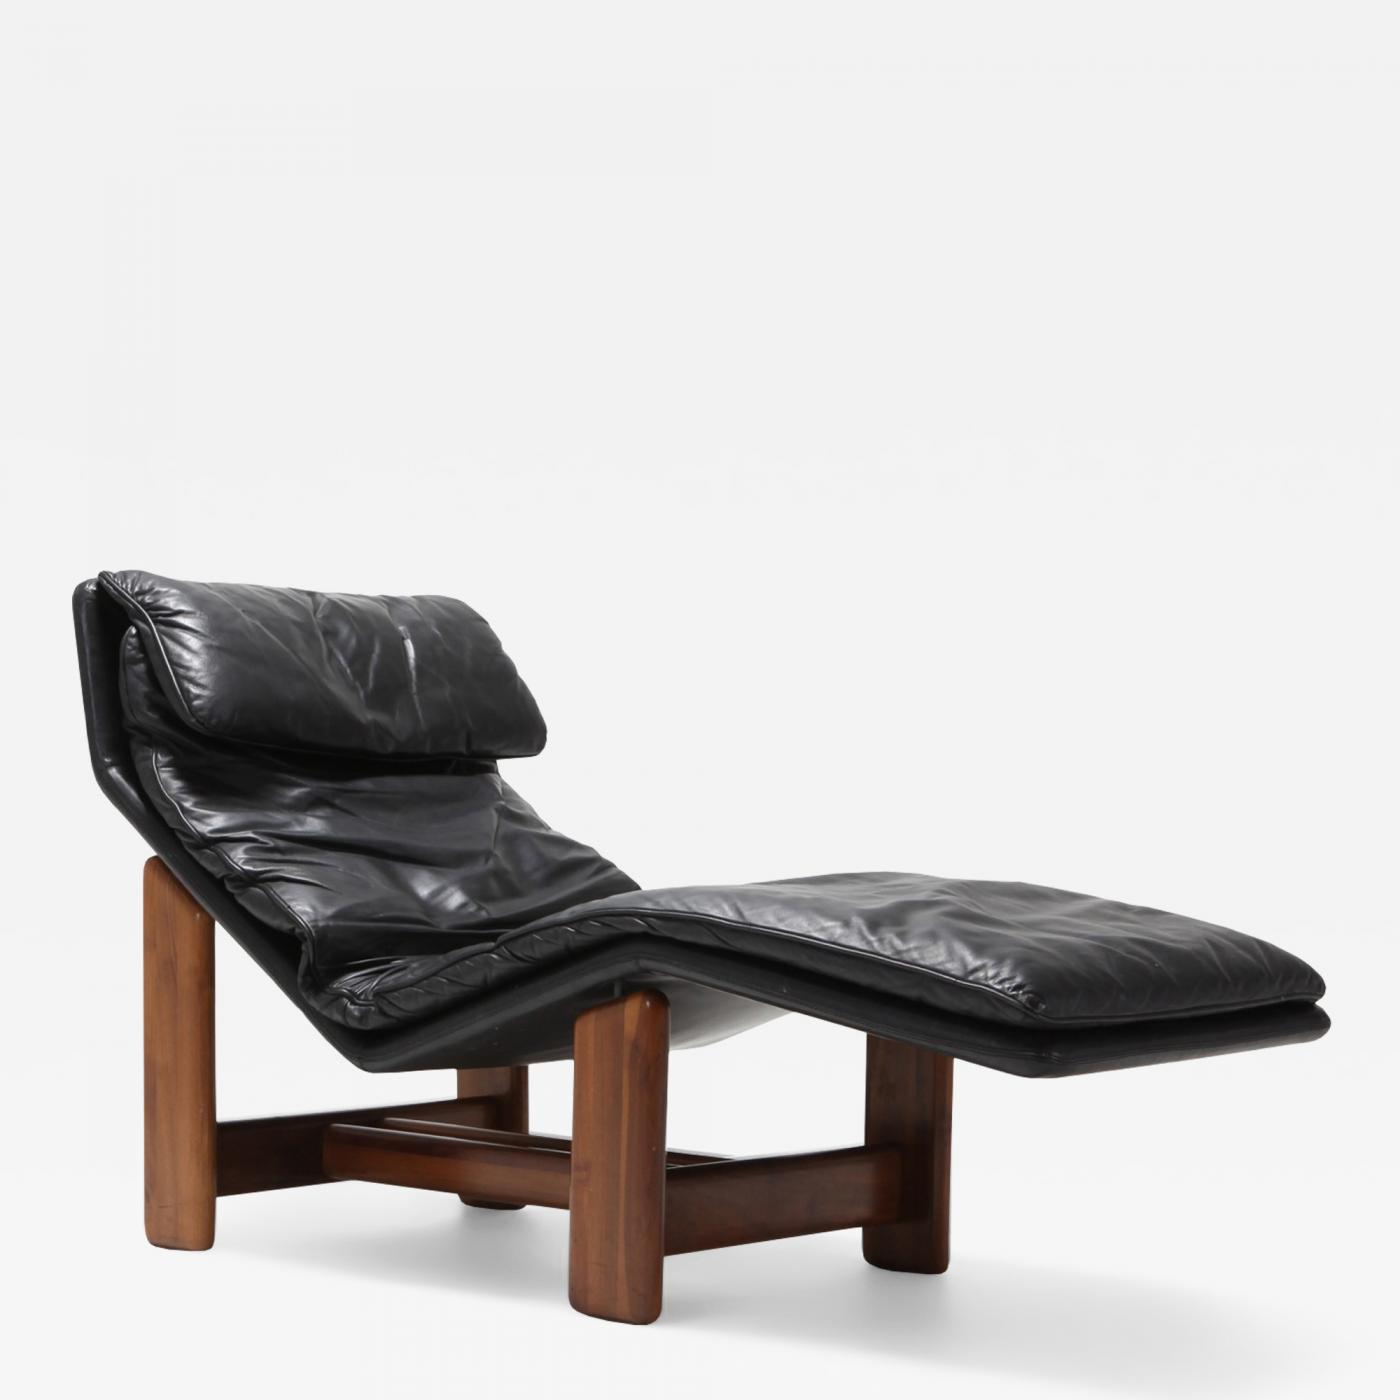 Enjoyable Afra Tobia Scarpa Black Leather And Walnut Lounge Chair Pabps2019 Chair Design Images Pabps2019Com